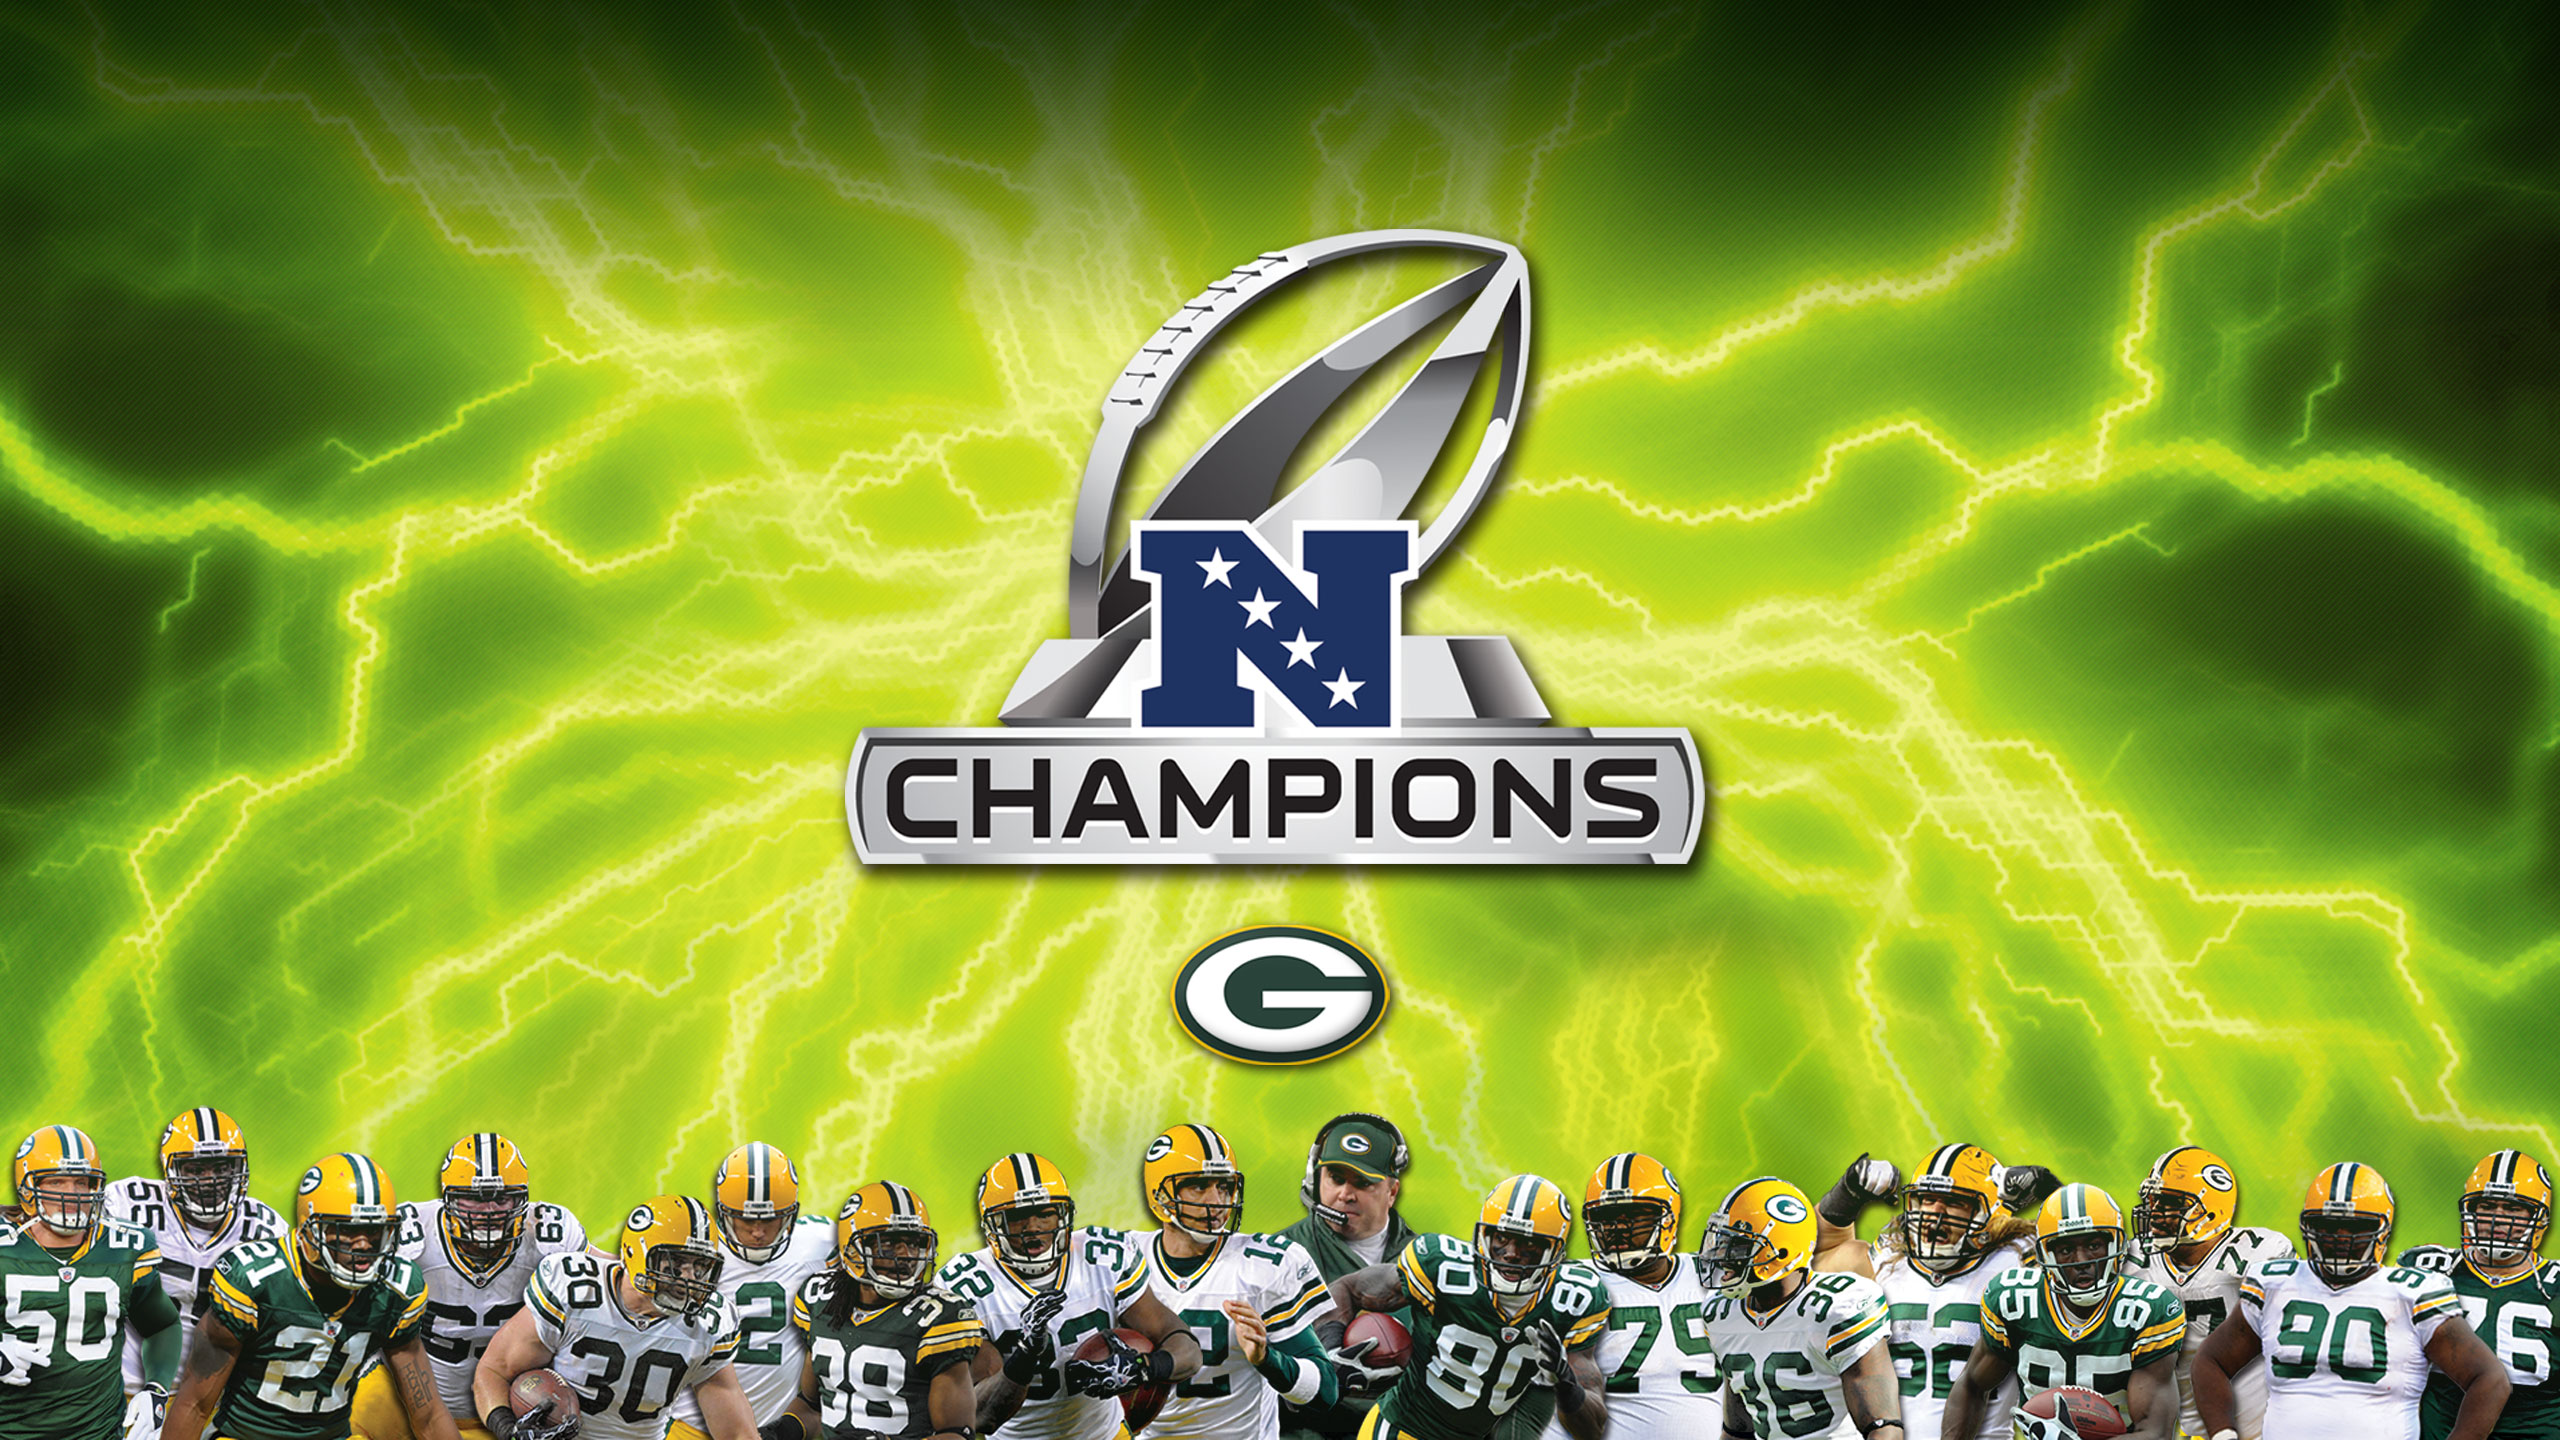 Green Bay Packers desktop wallpaper Green Bay Packers wallpapers 2560x1440